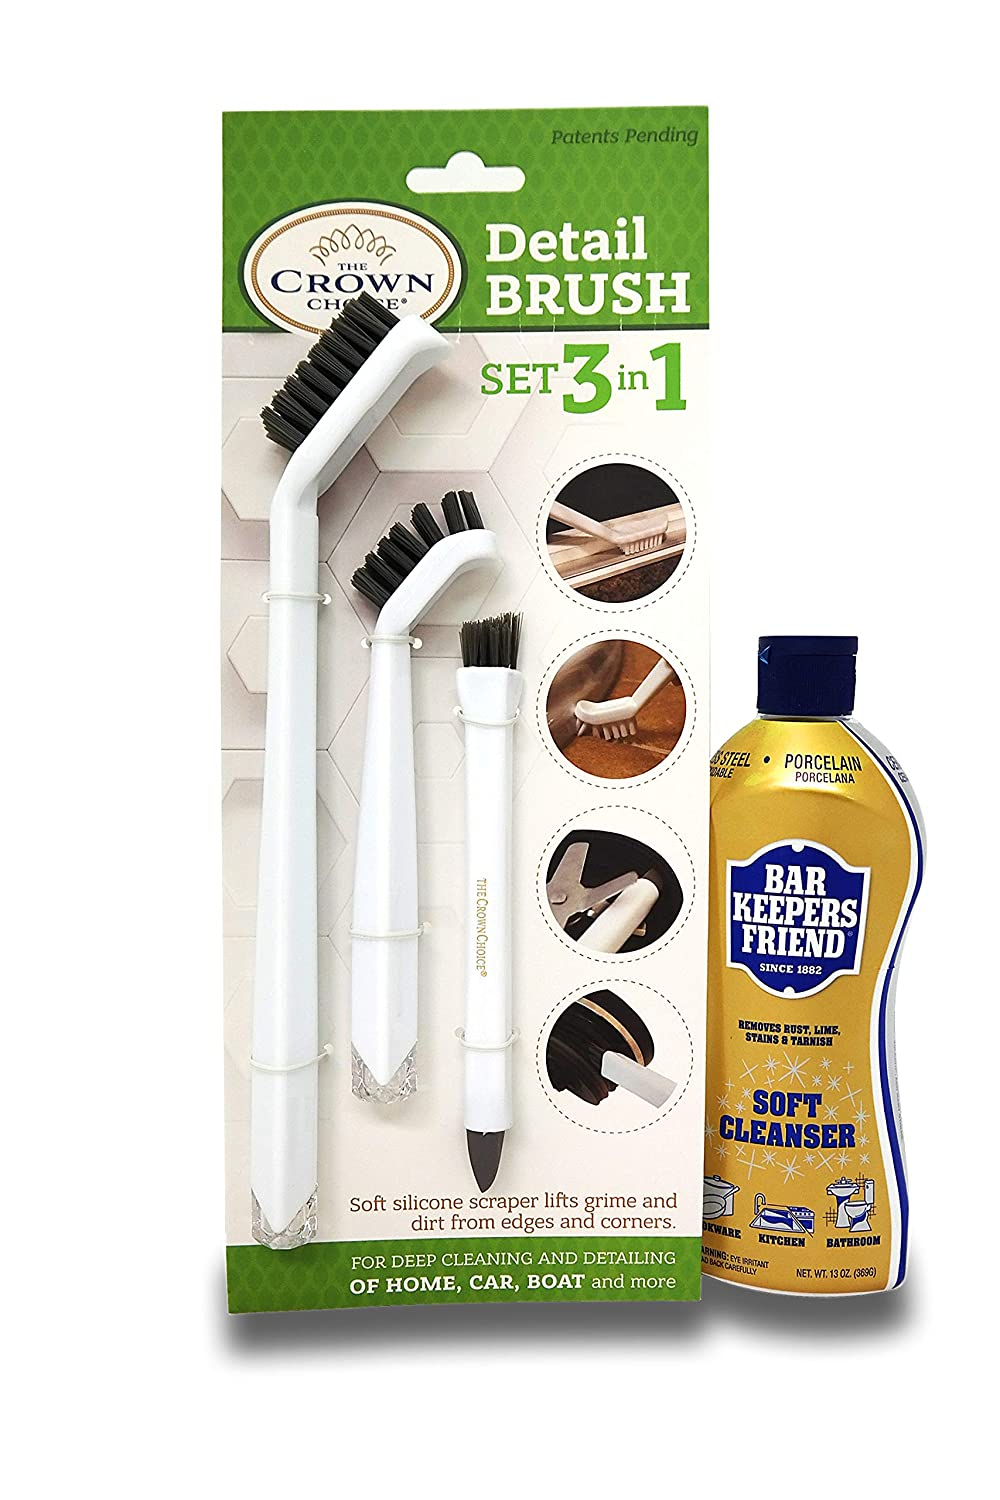 BAR KEEPERS FRIEND Soft Cleanser (13 OZ) with All Purpose Scrubber Cloth   Durable and Multipurpose. Cleans Stainless Steel, Rust, Minerals